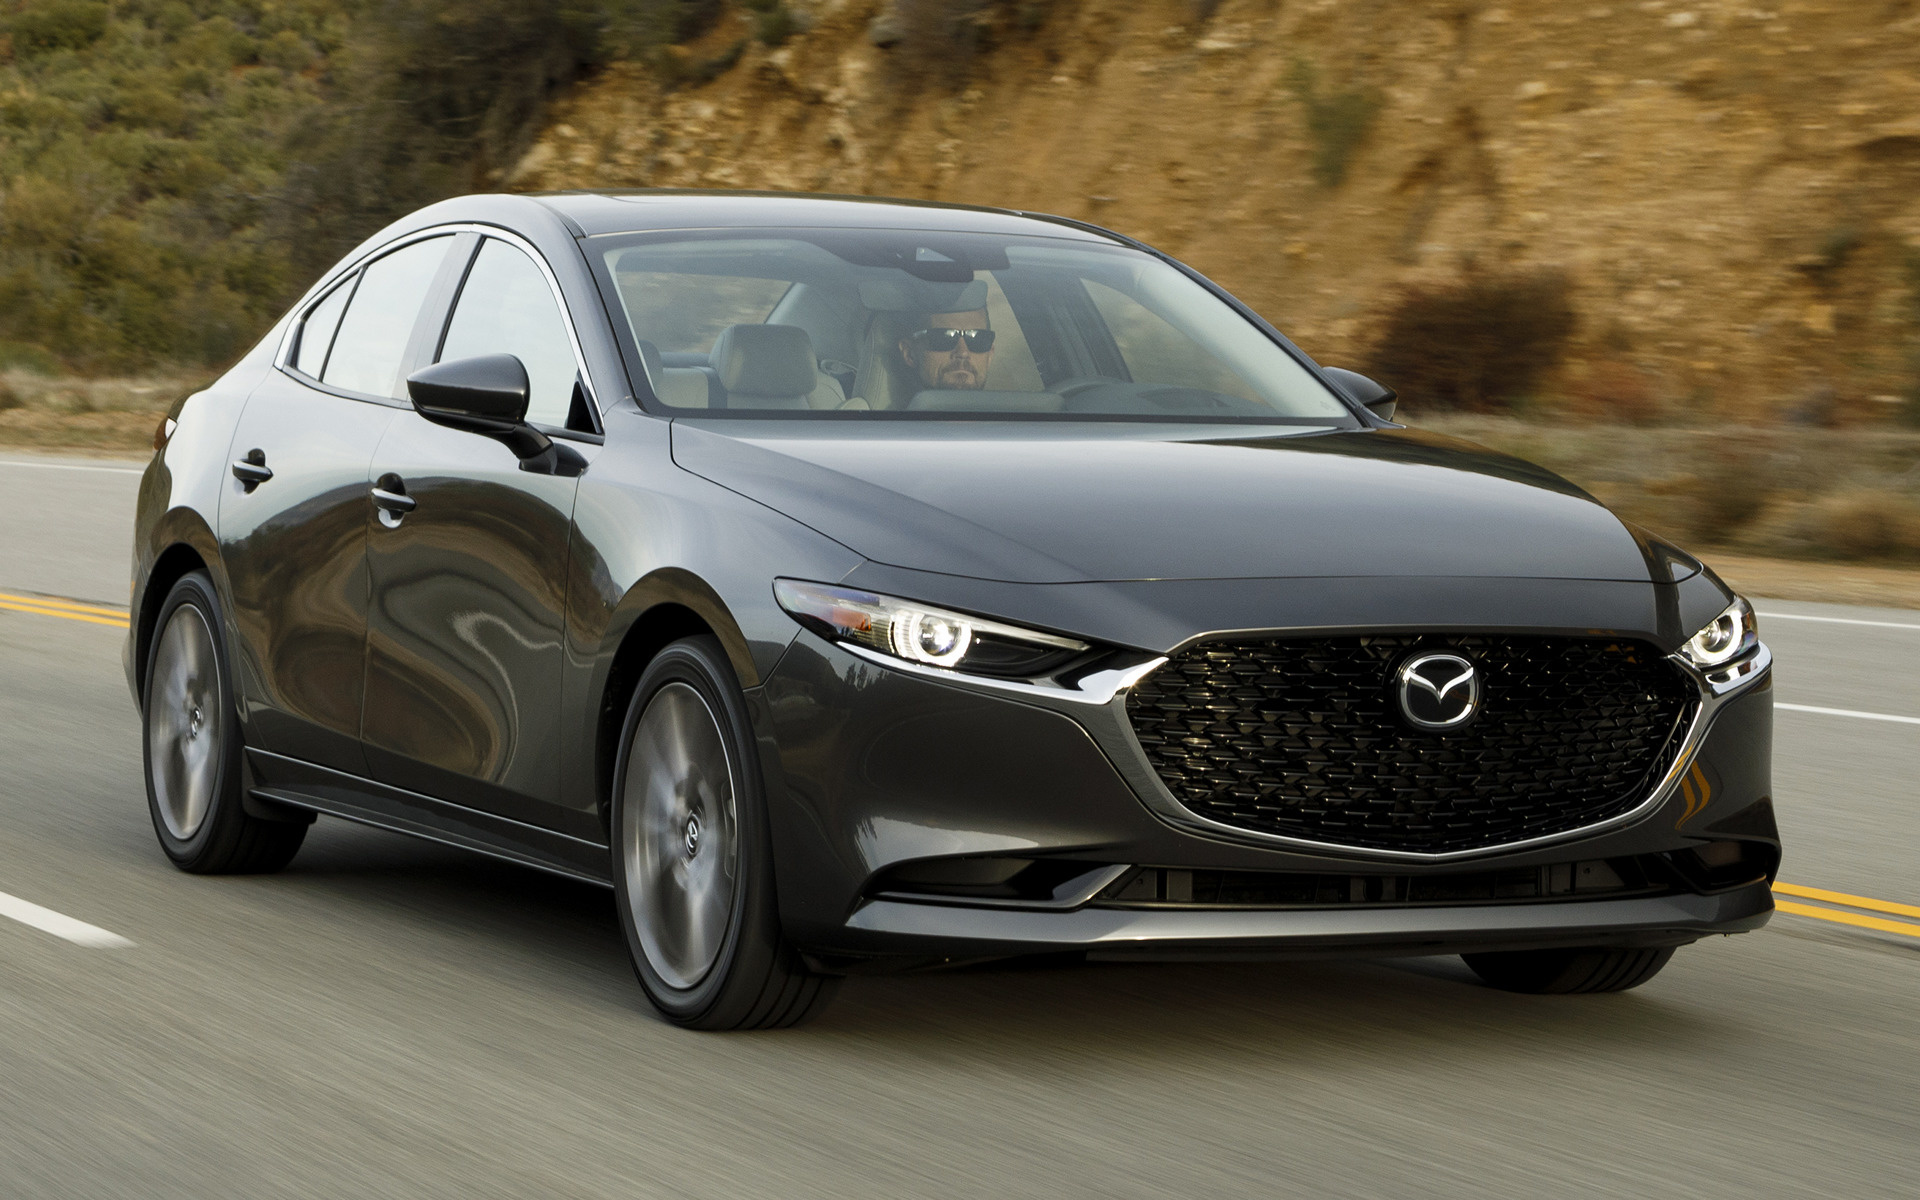 2020 Mazda3 Sedan (US) - Wallpapers and HD Images | Car Pixel